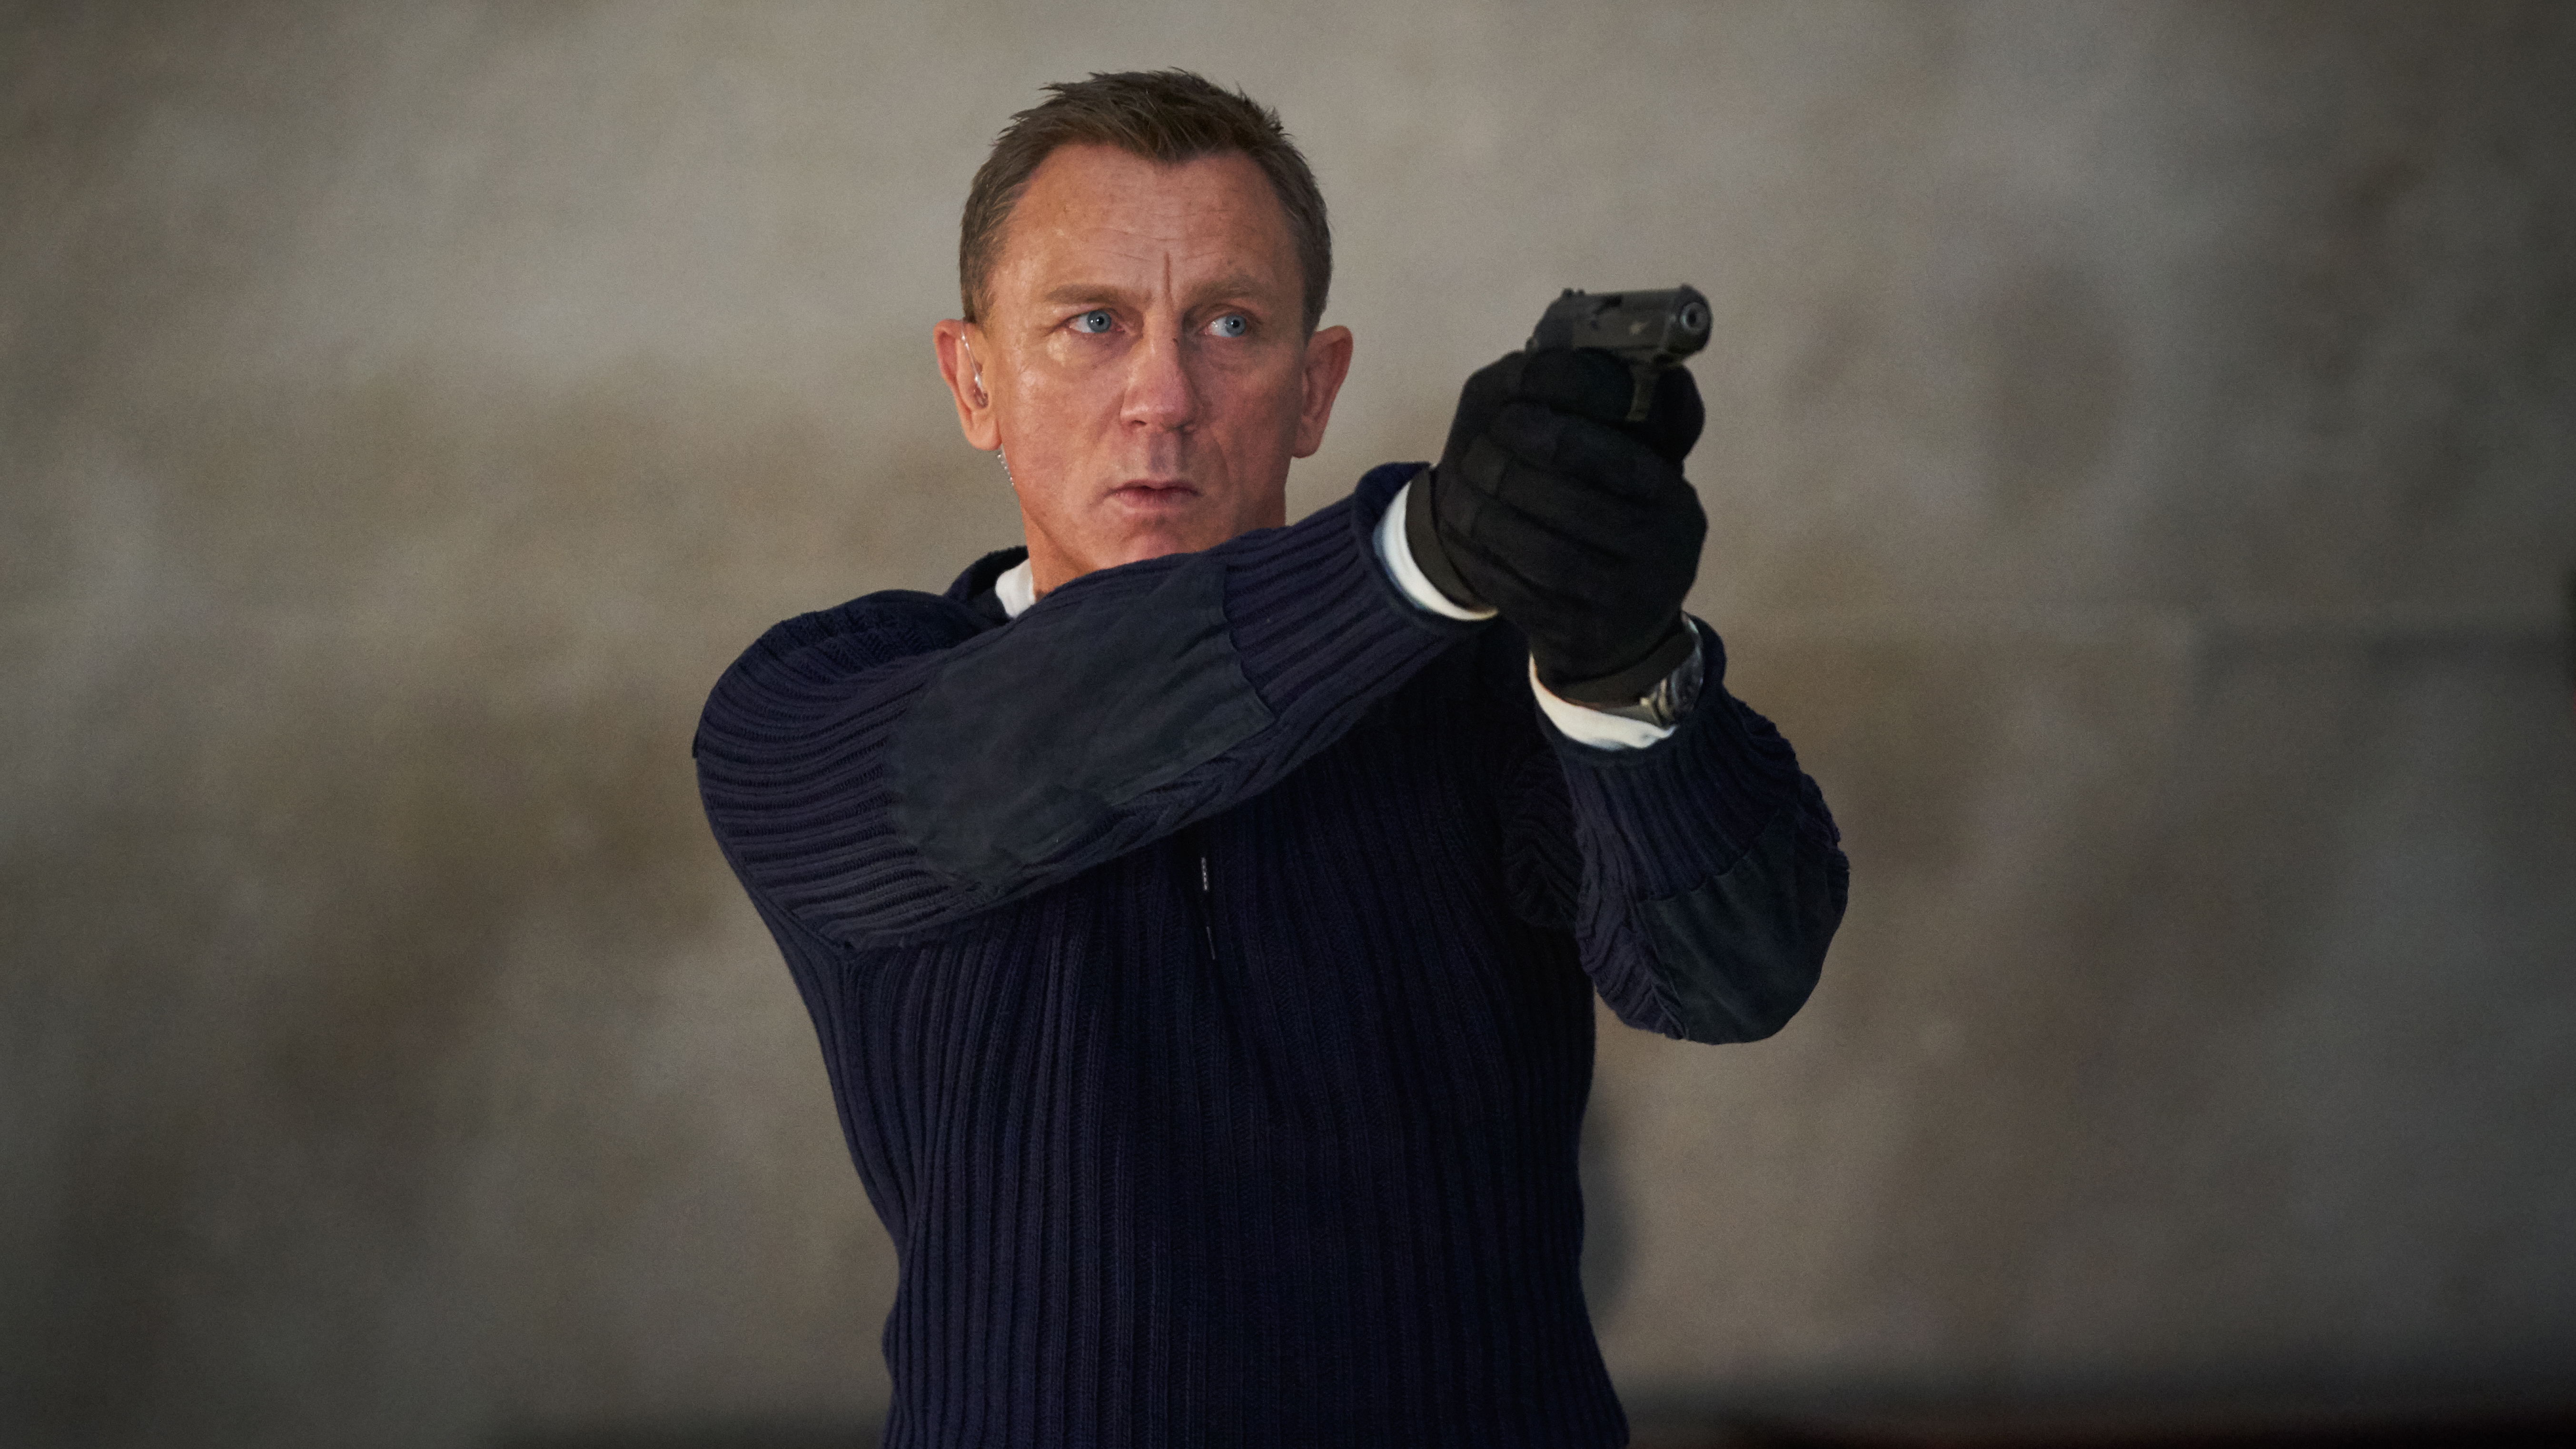 James Bond film 'No Time to Die' release pushed back again – Fox News